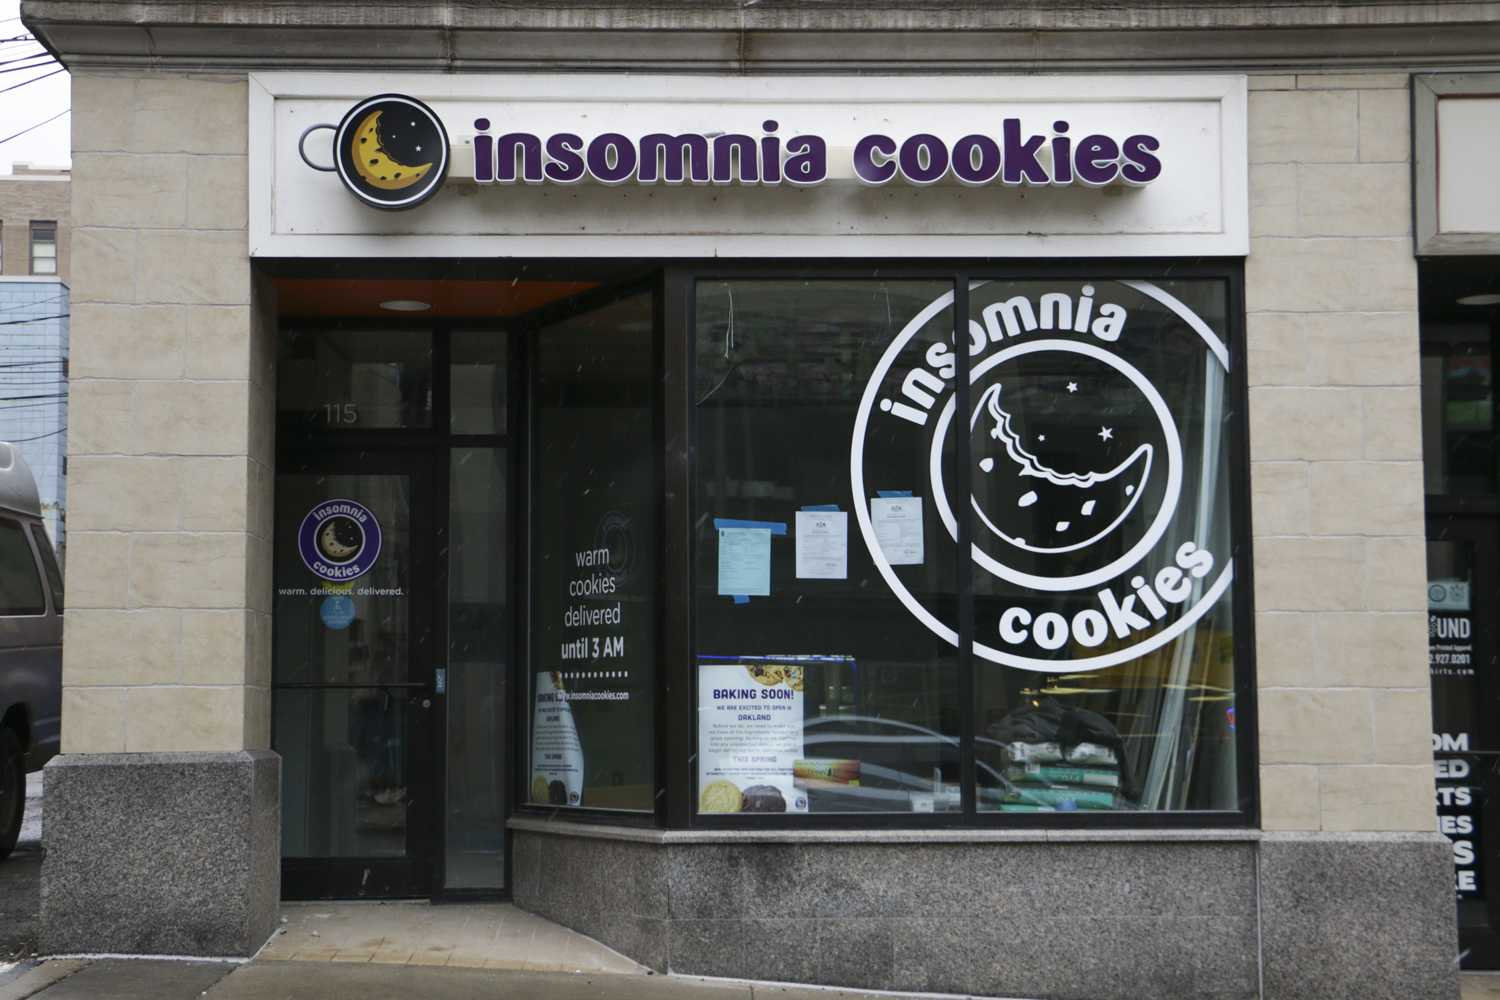 Popular food company Insomnia Cookies replaced Peace, Love and Little Donuts on Meyran Street. (Photo by Isabelle Glatts | Assistant Visual Editor)